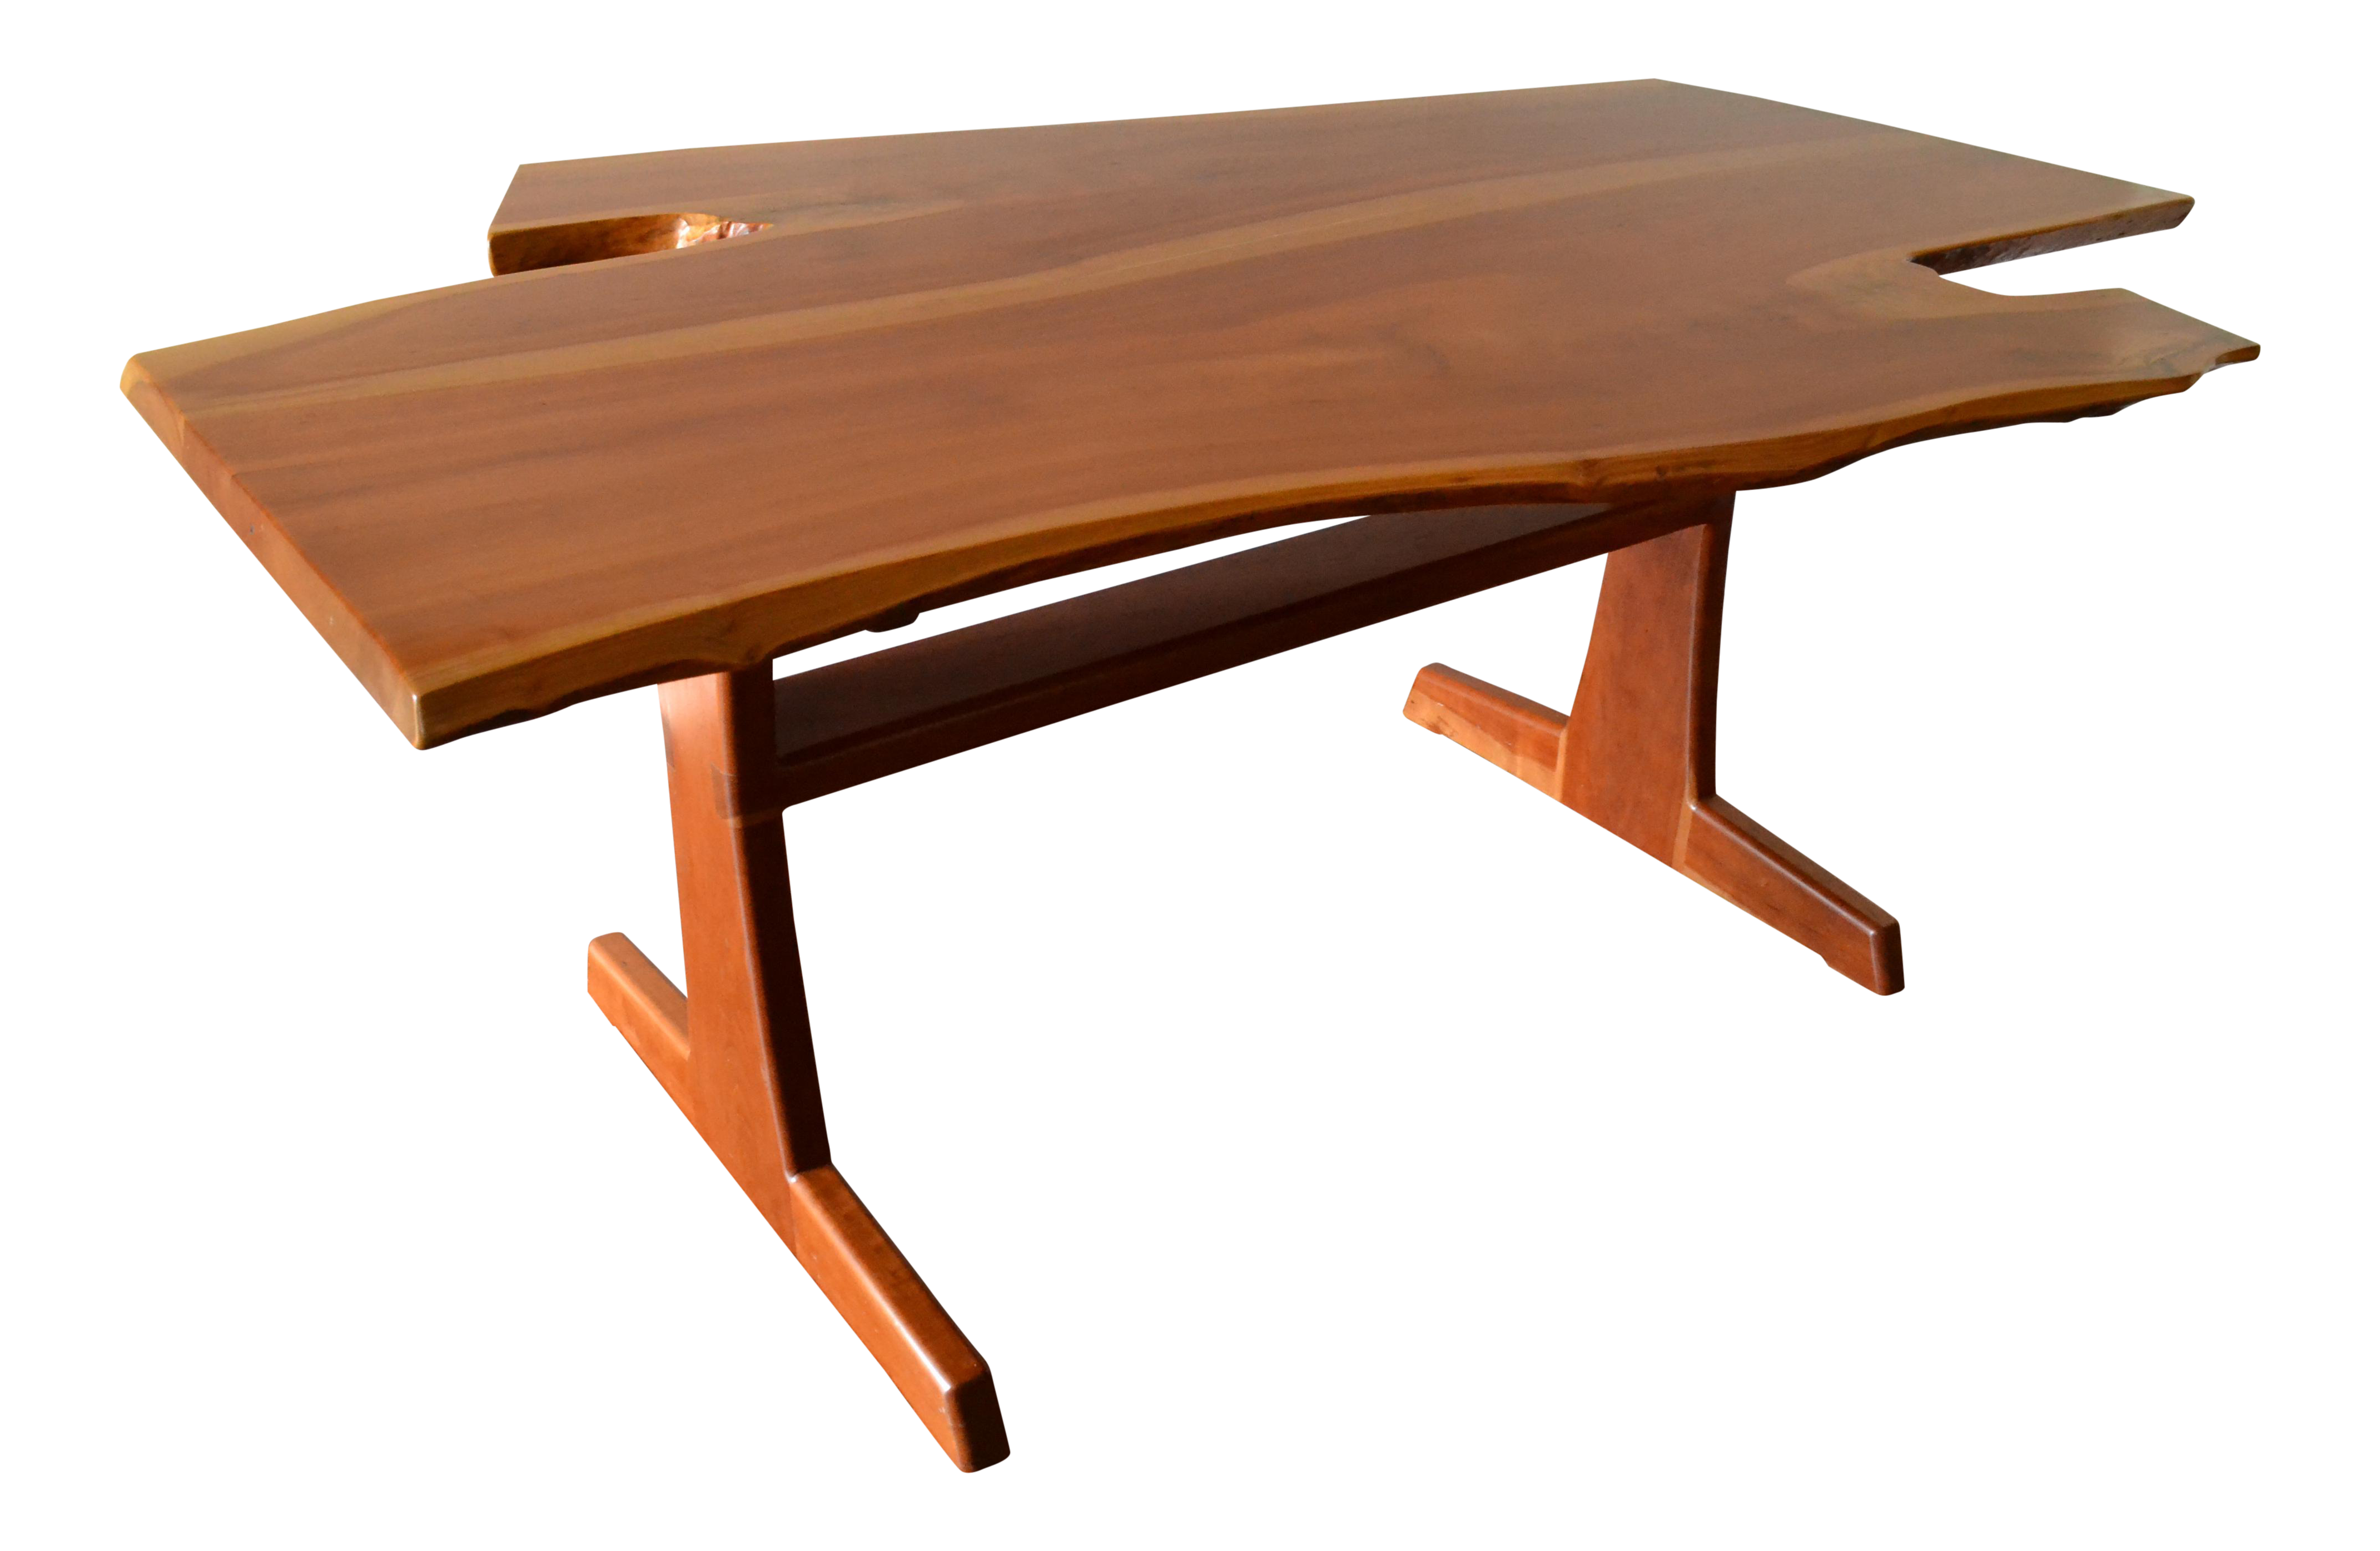 Custom Cherry Wood Sculptural Live Edge Dining Table